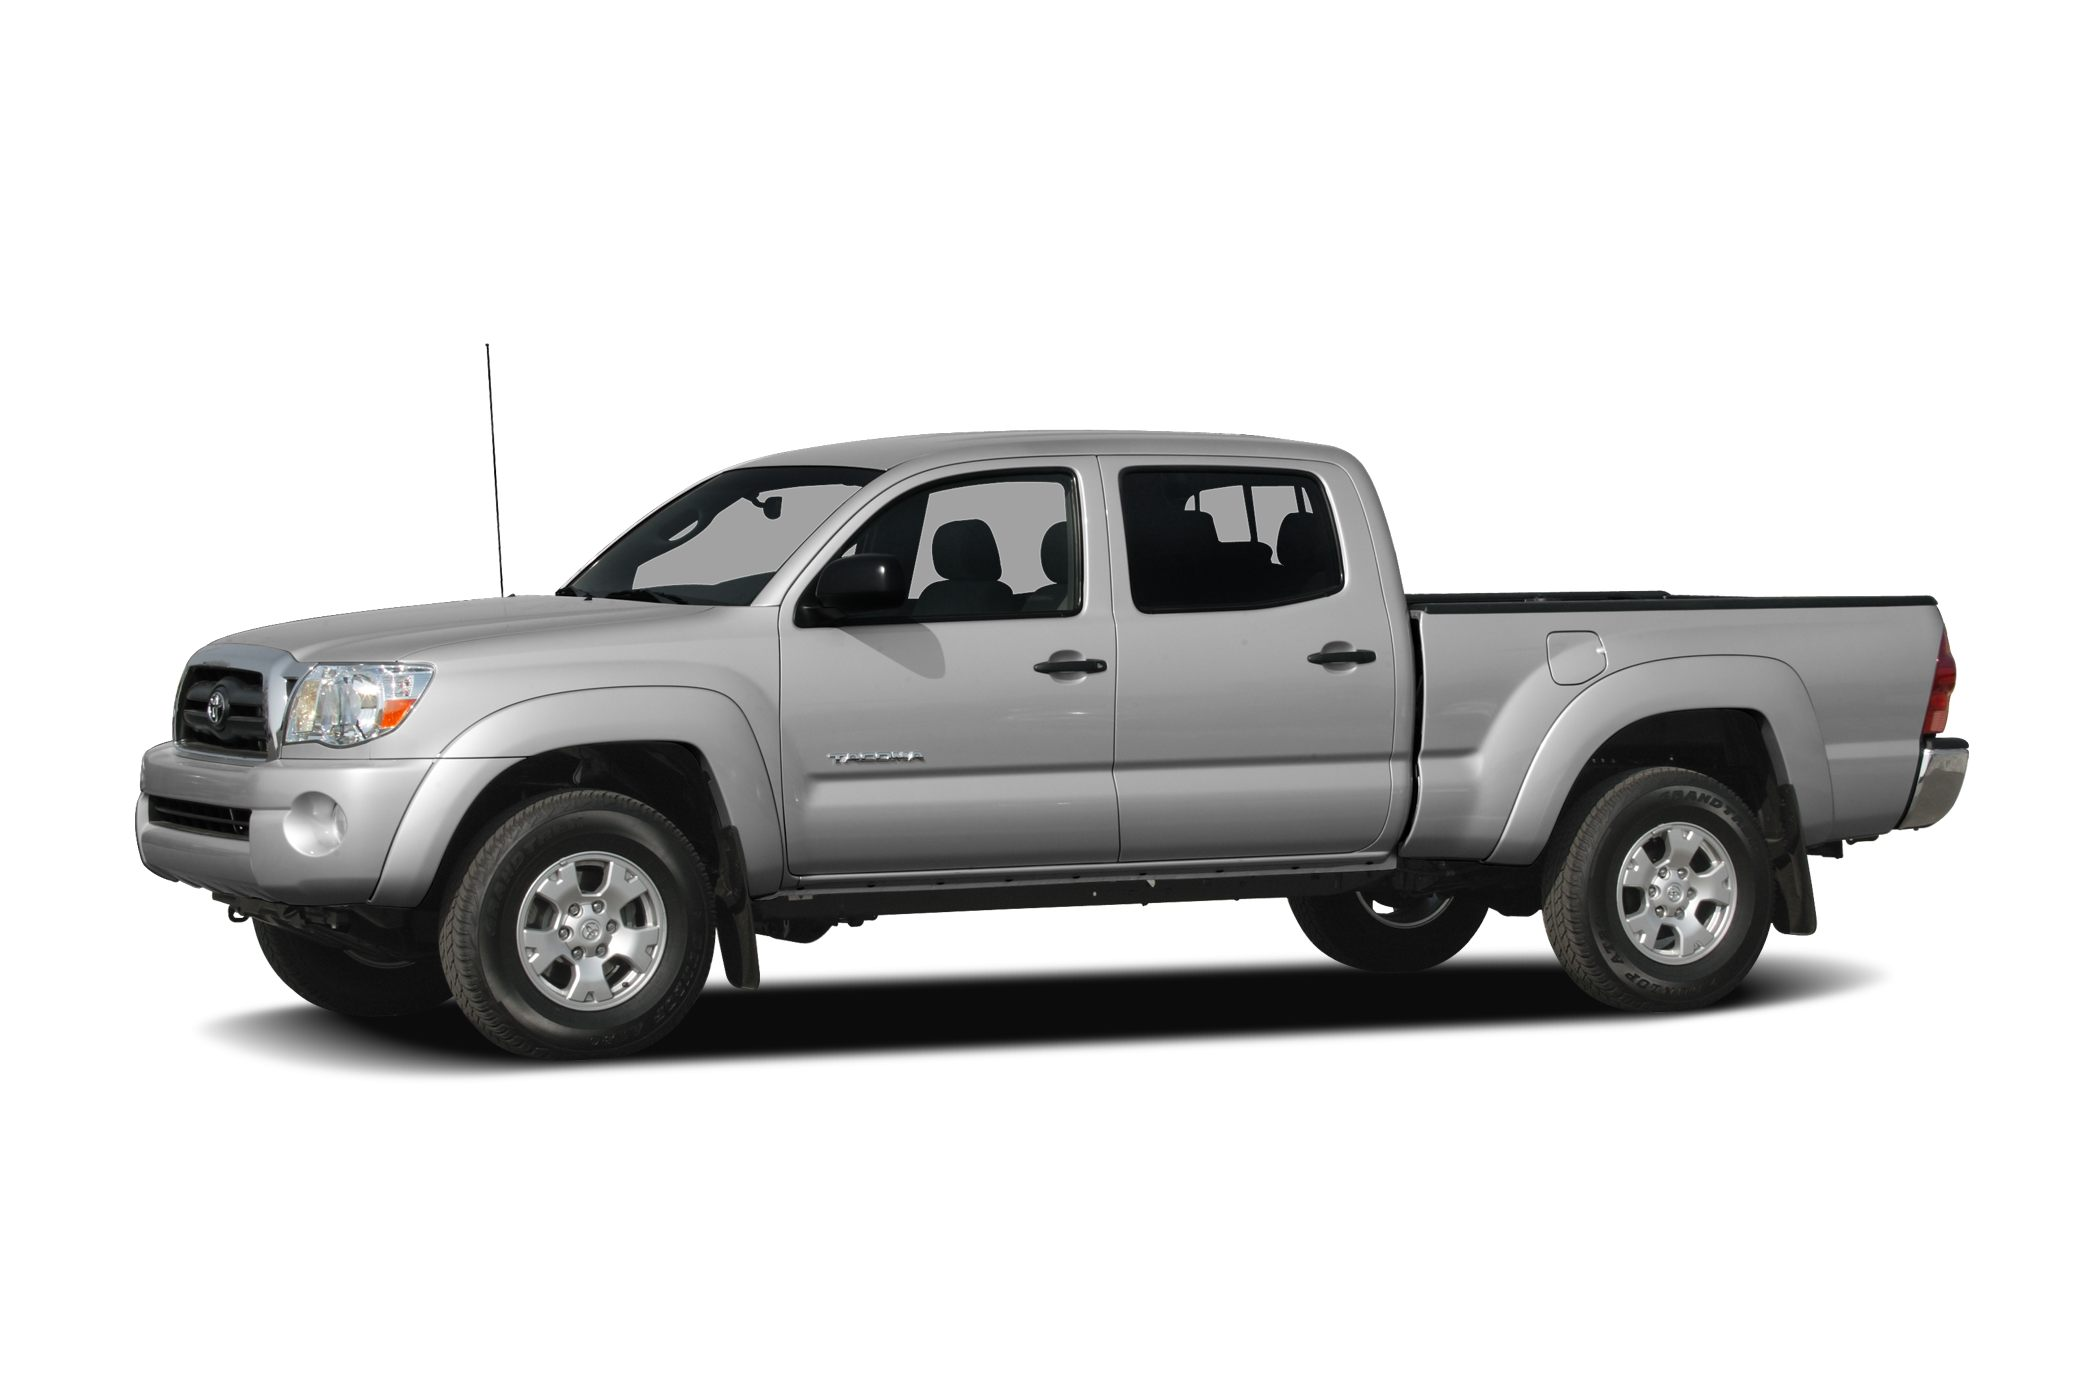 2008 Toyota Tacoma PreRunner Double Cab Crew Cab Pickup for sale in Ocoee for $17,800 with 116,595 miles.